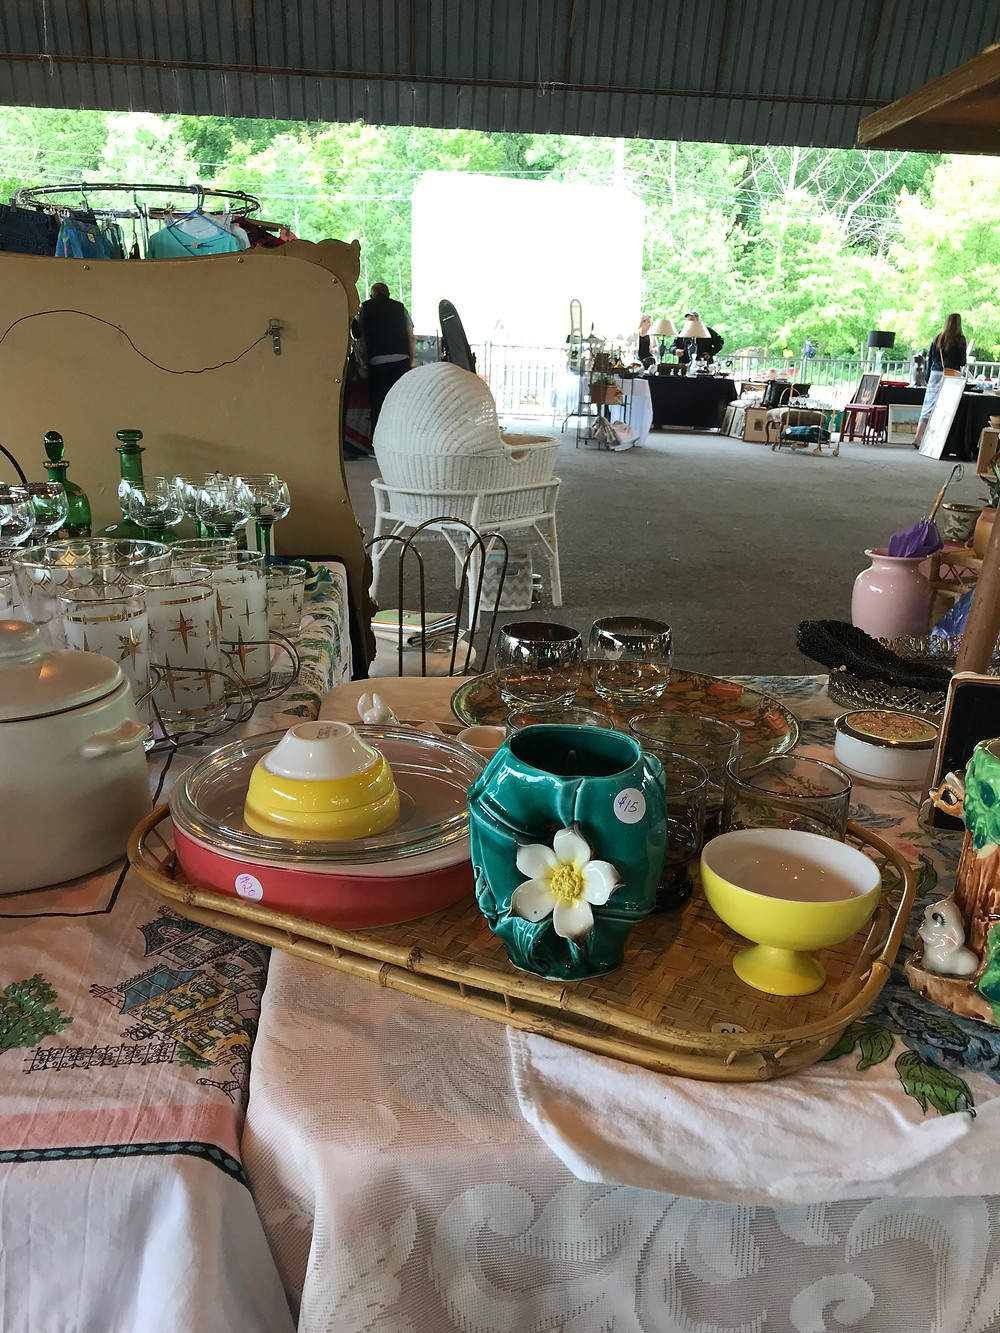 Items from the Ontario Vintage Market at Evergreen Brickworks